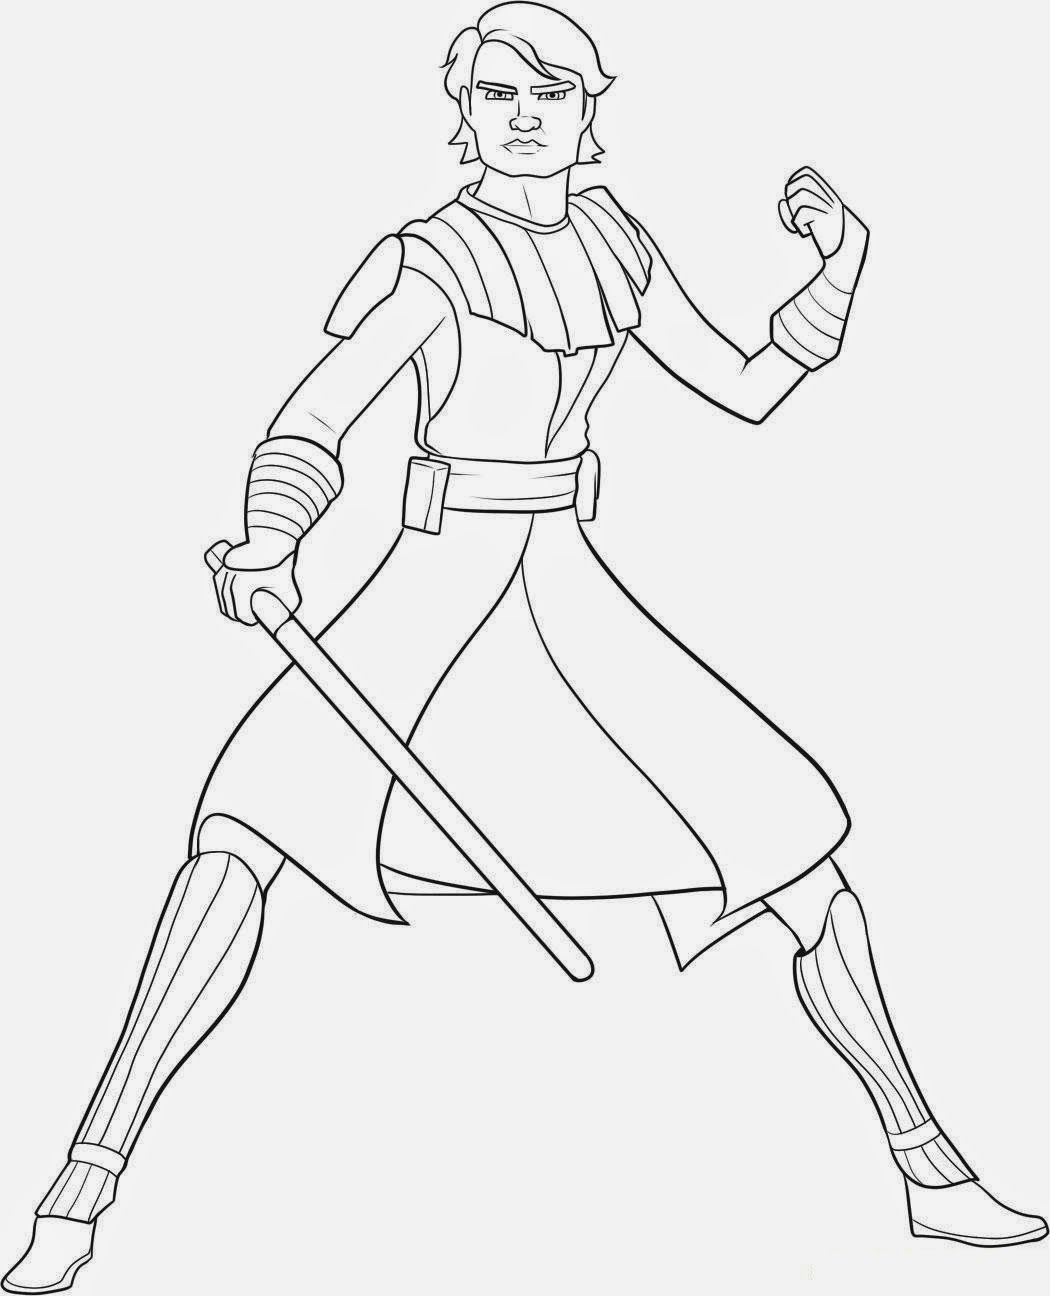 1050x1296 Luke Skywalker Coloring Page Elegant Star Wars Luke Skywalker